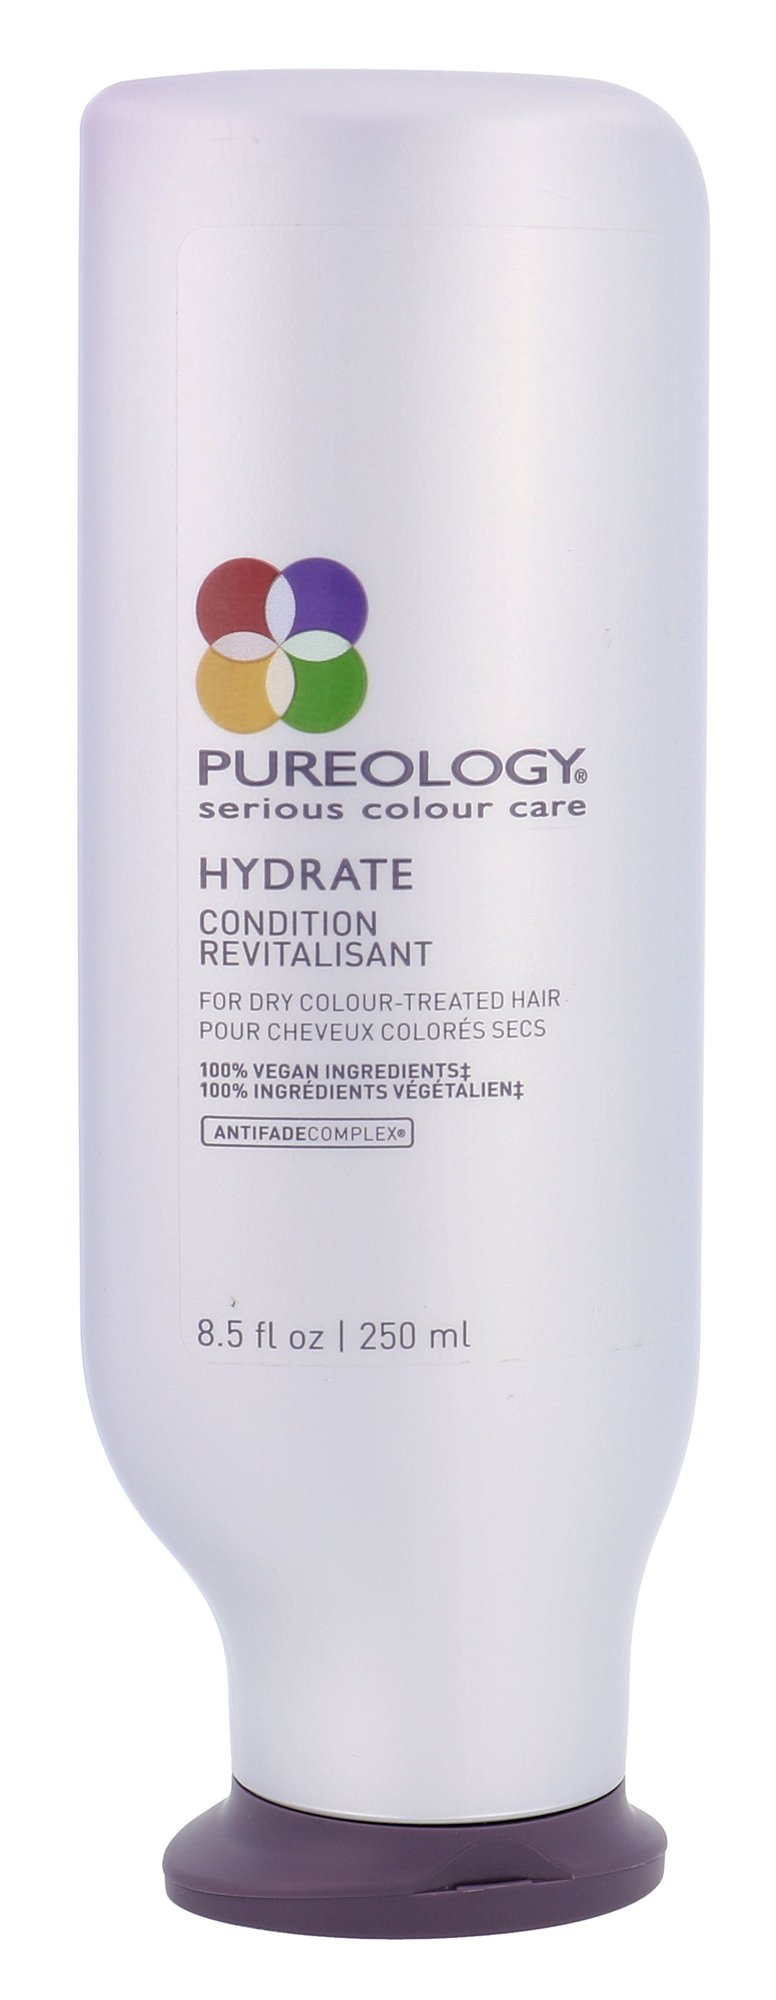 Redken Pureology Pure Hydrate Condition Revitalisant Cosmetic 250ml